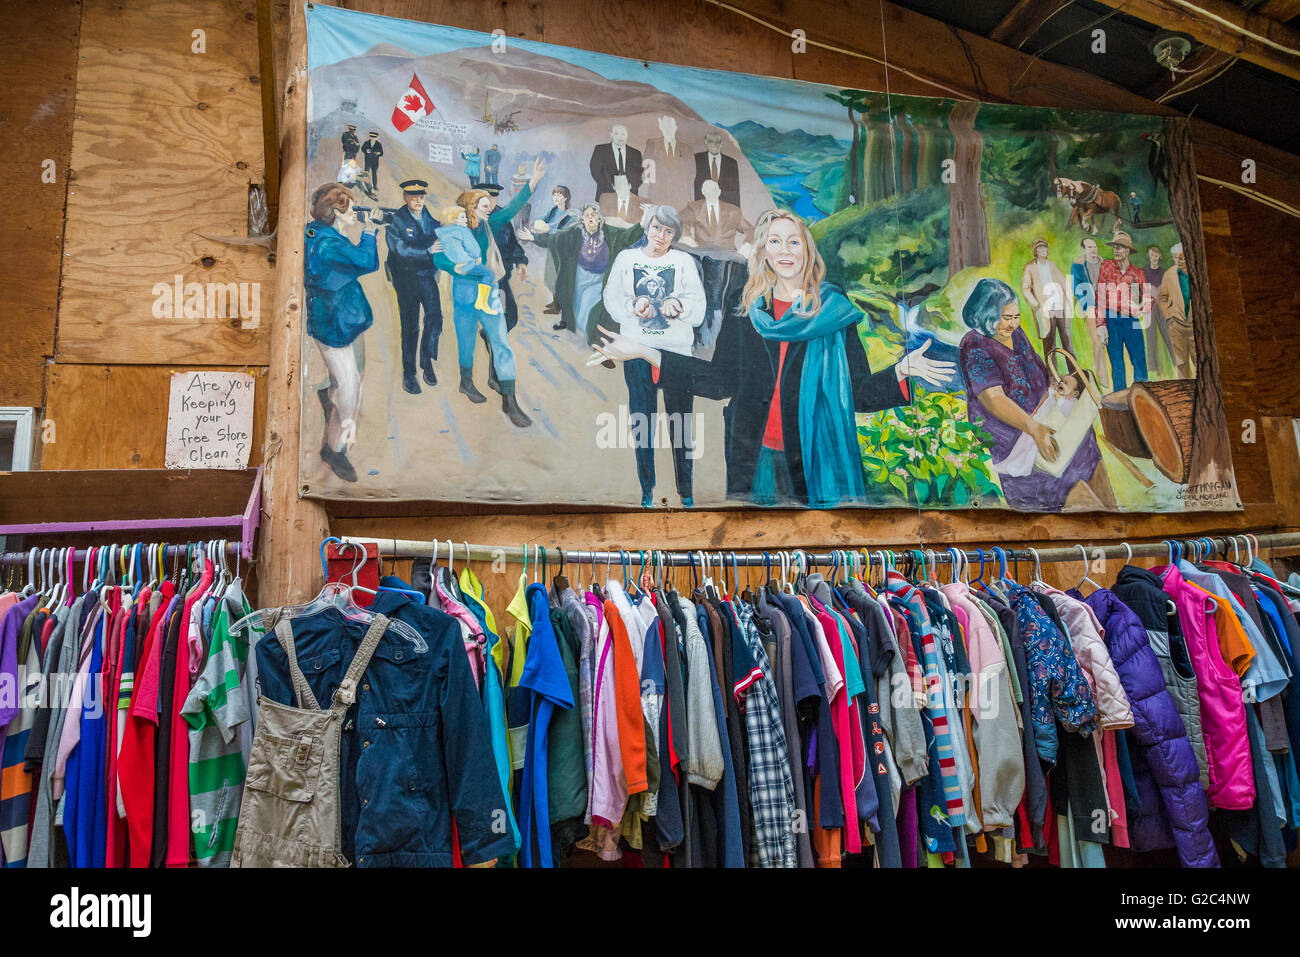 Mural featuring Clayoquot protest arrests, Hornby Island Free Store,  Hornby Island, British Columbia, Canada - Stock Image